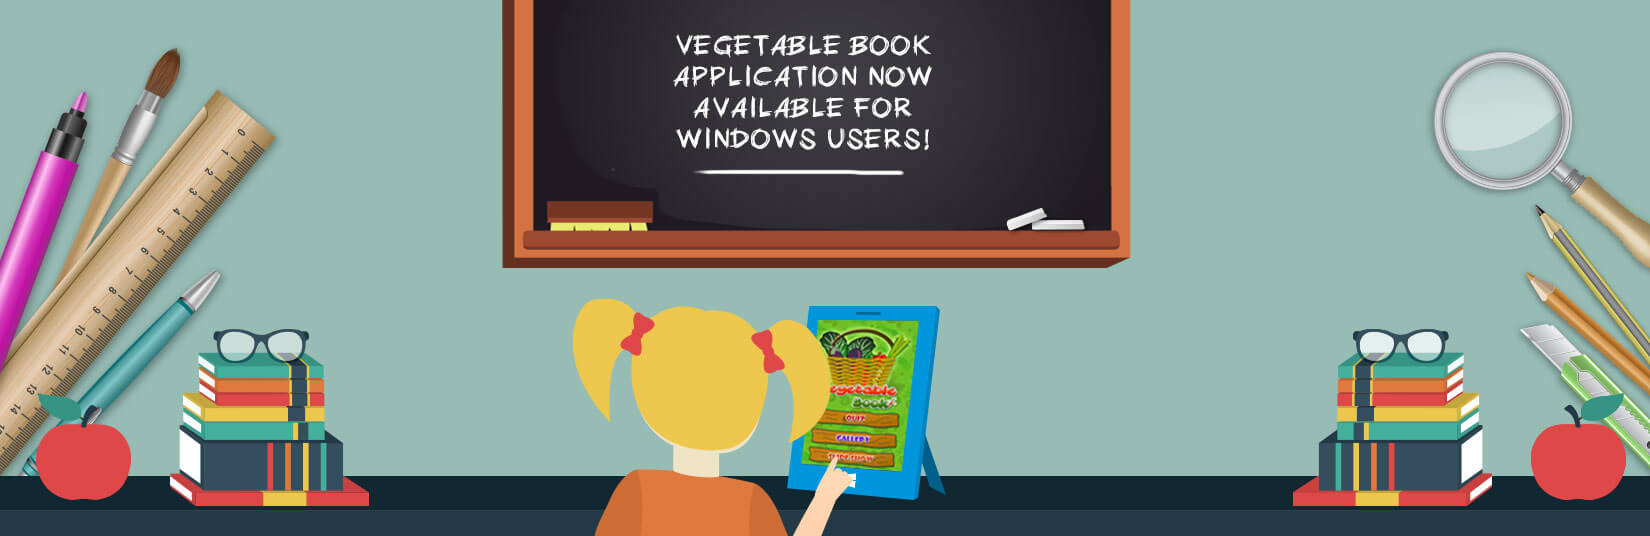 A Popular Vegetable Book Application Now Available for Kids For Windows Users